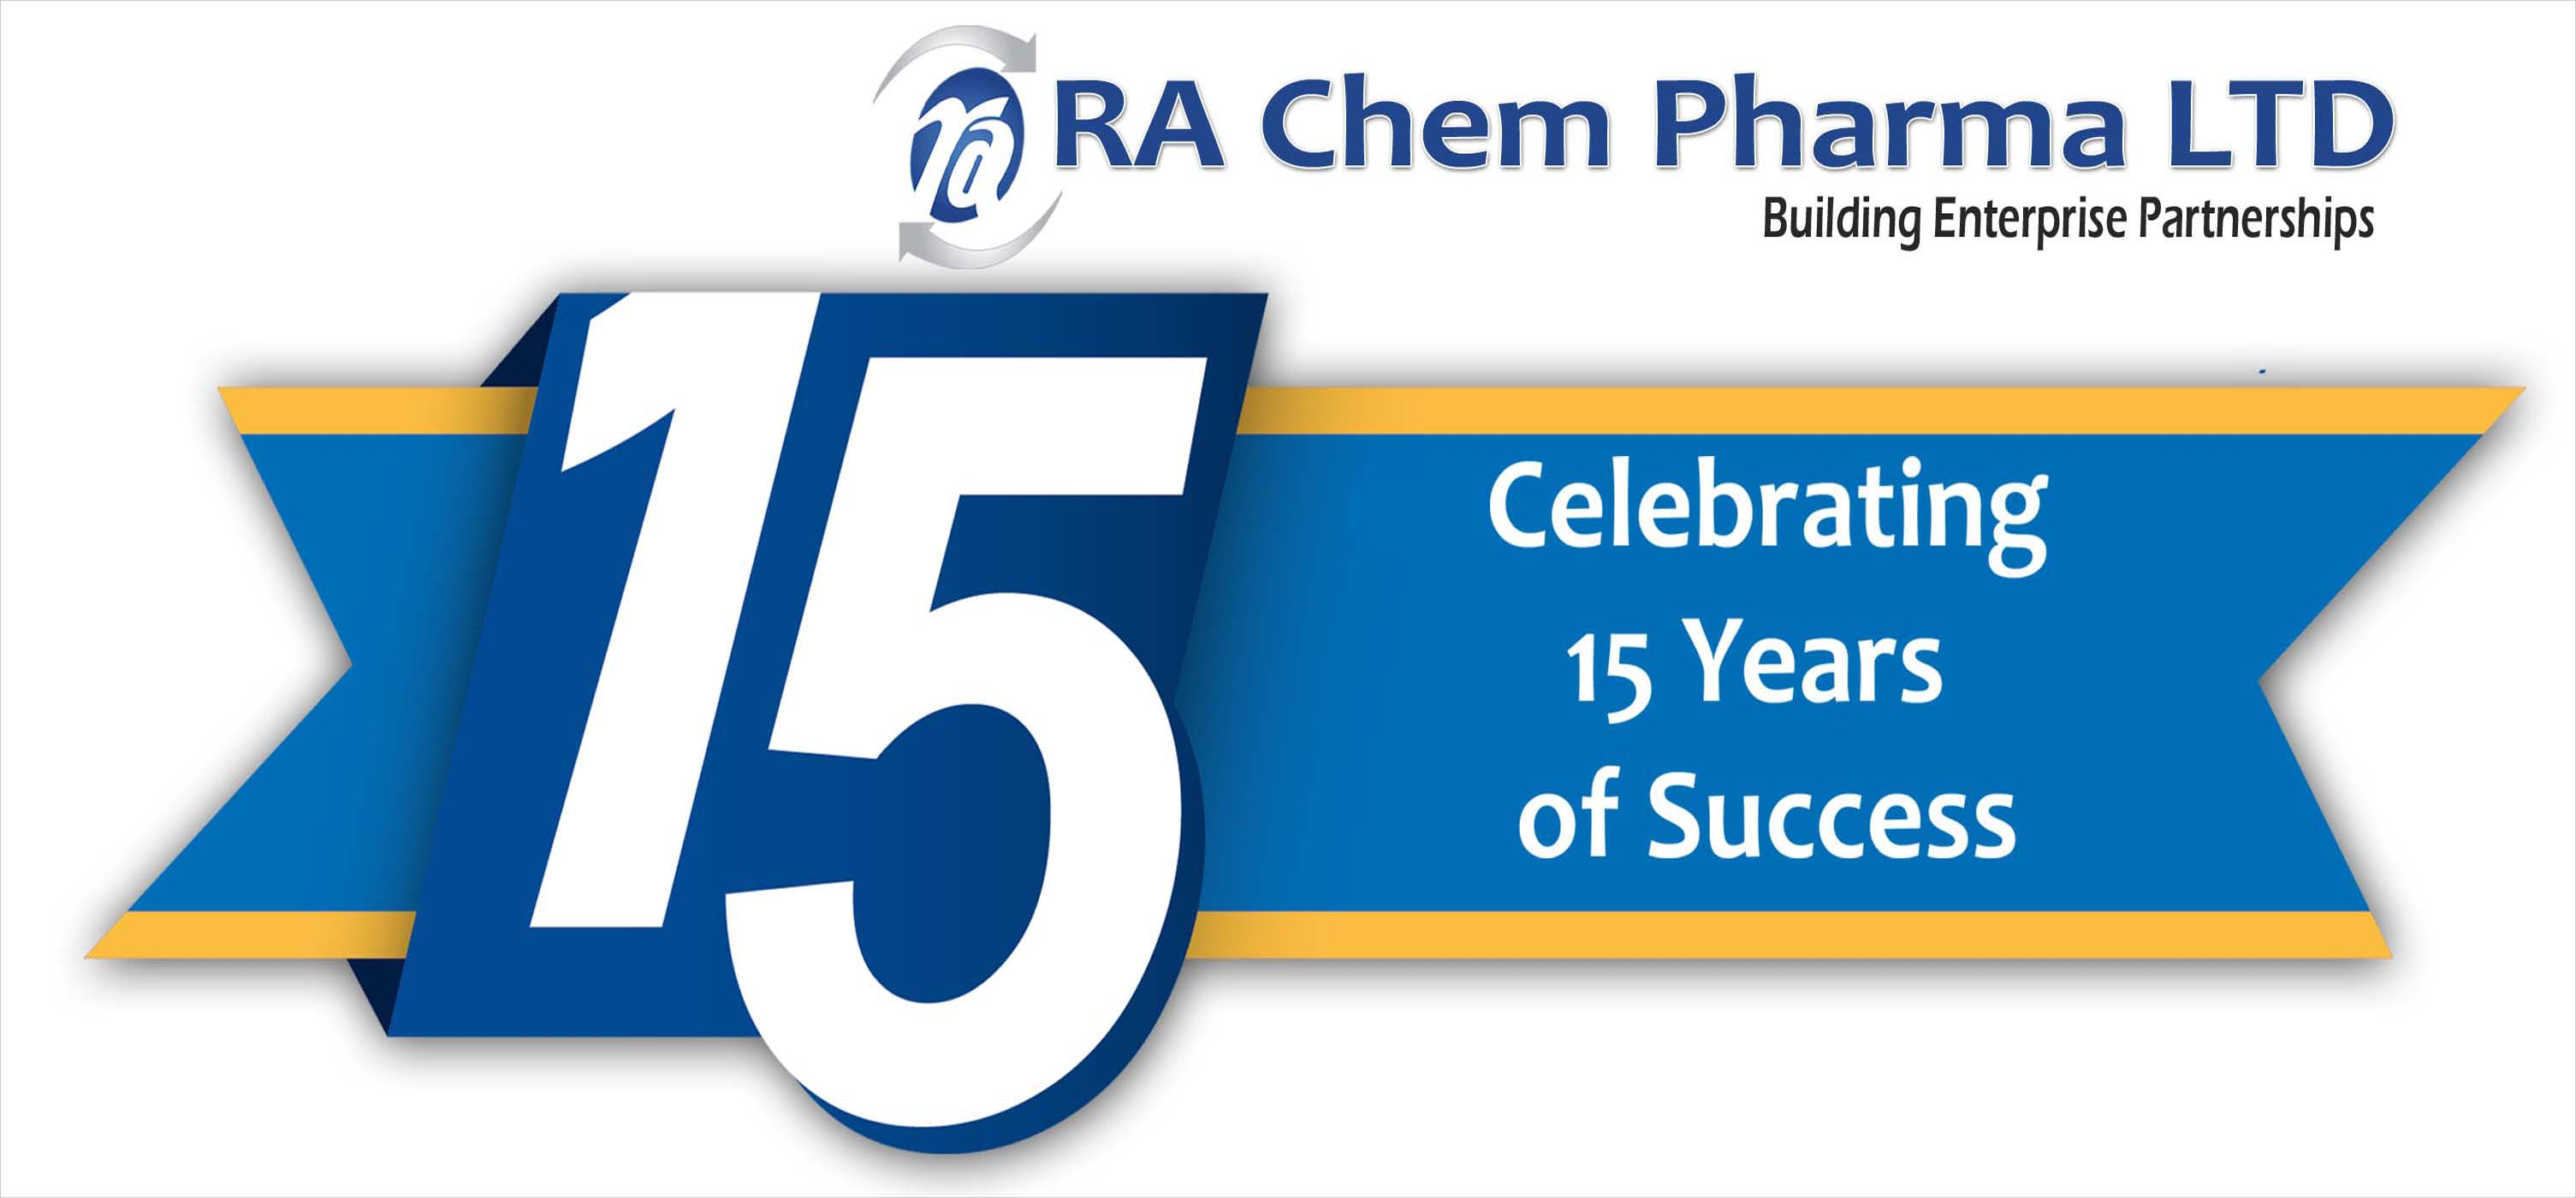 RA Chem Pharma Ltd